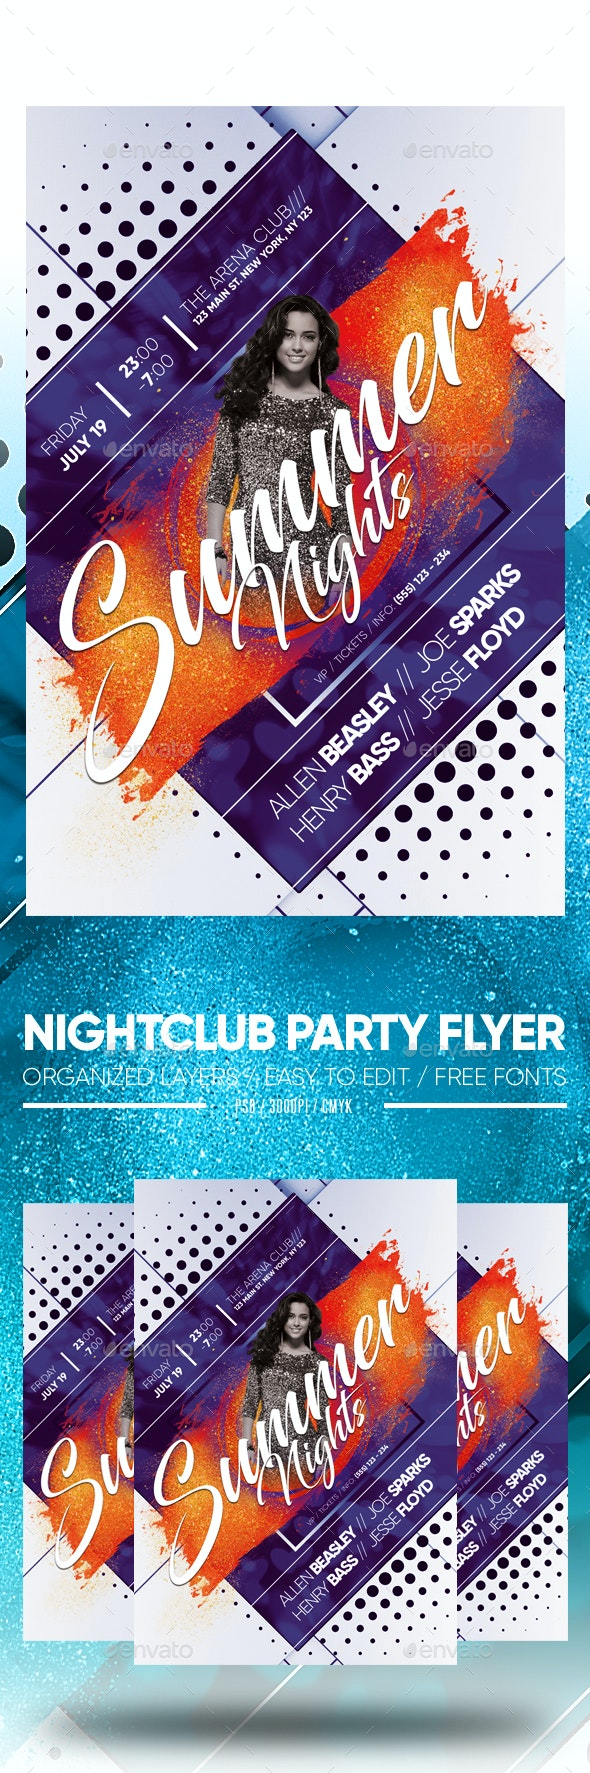 Nightclub Party Flyer - Clubs & Parties Events